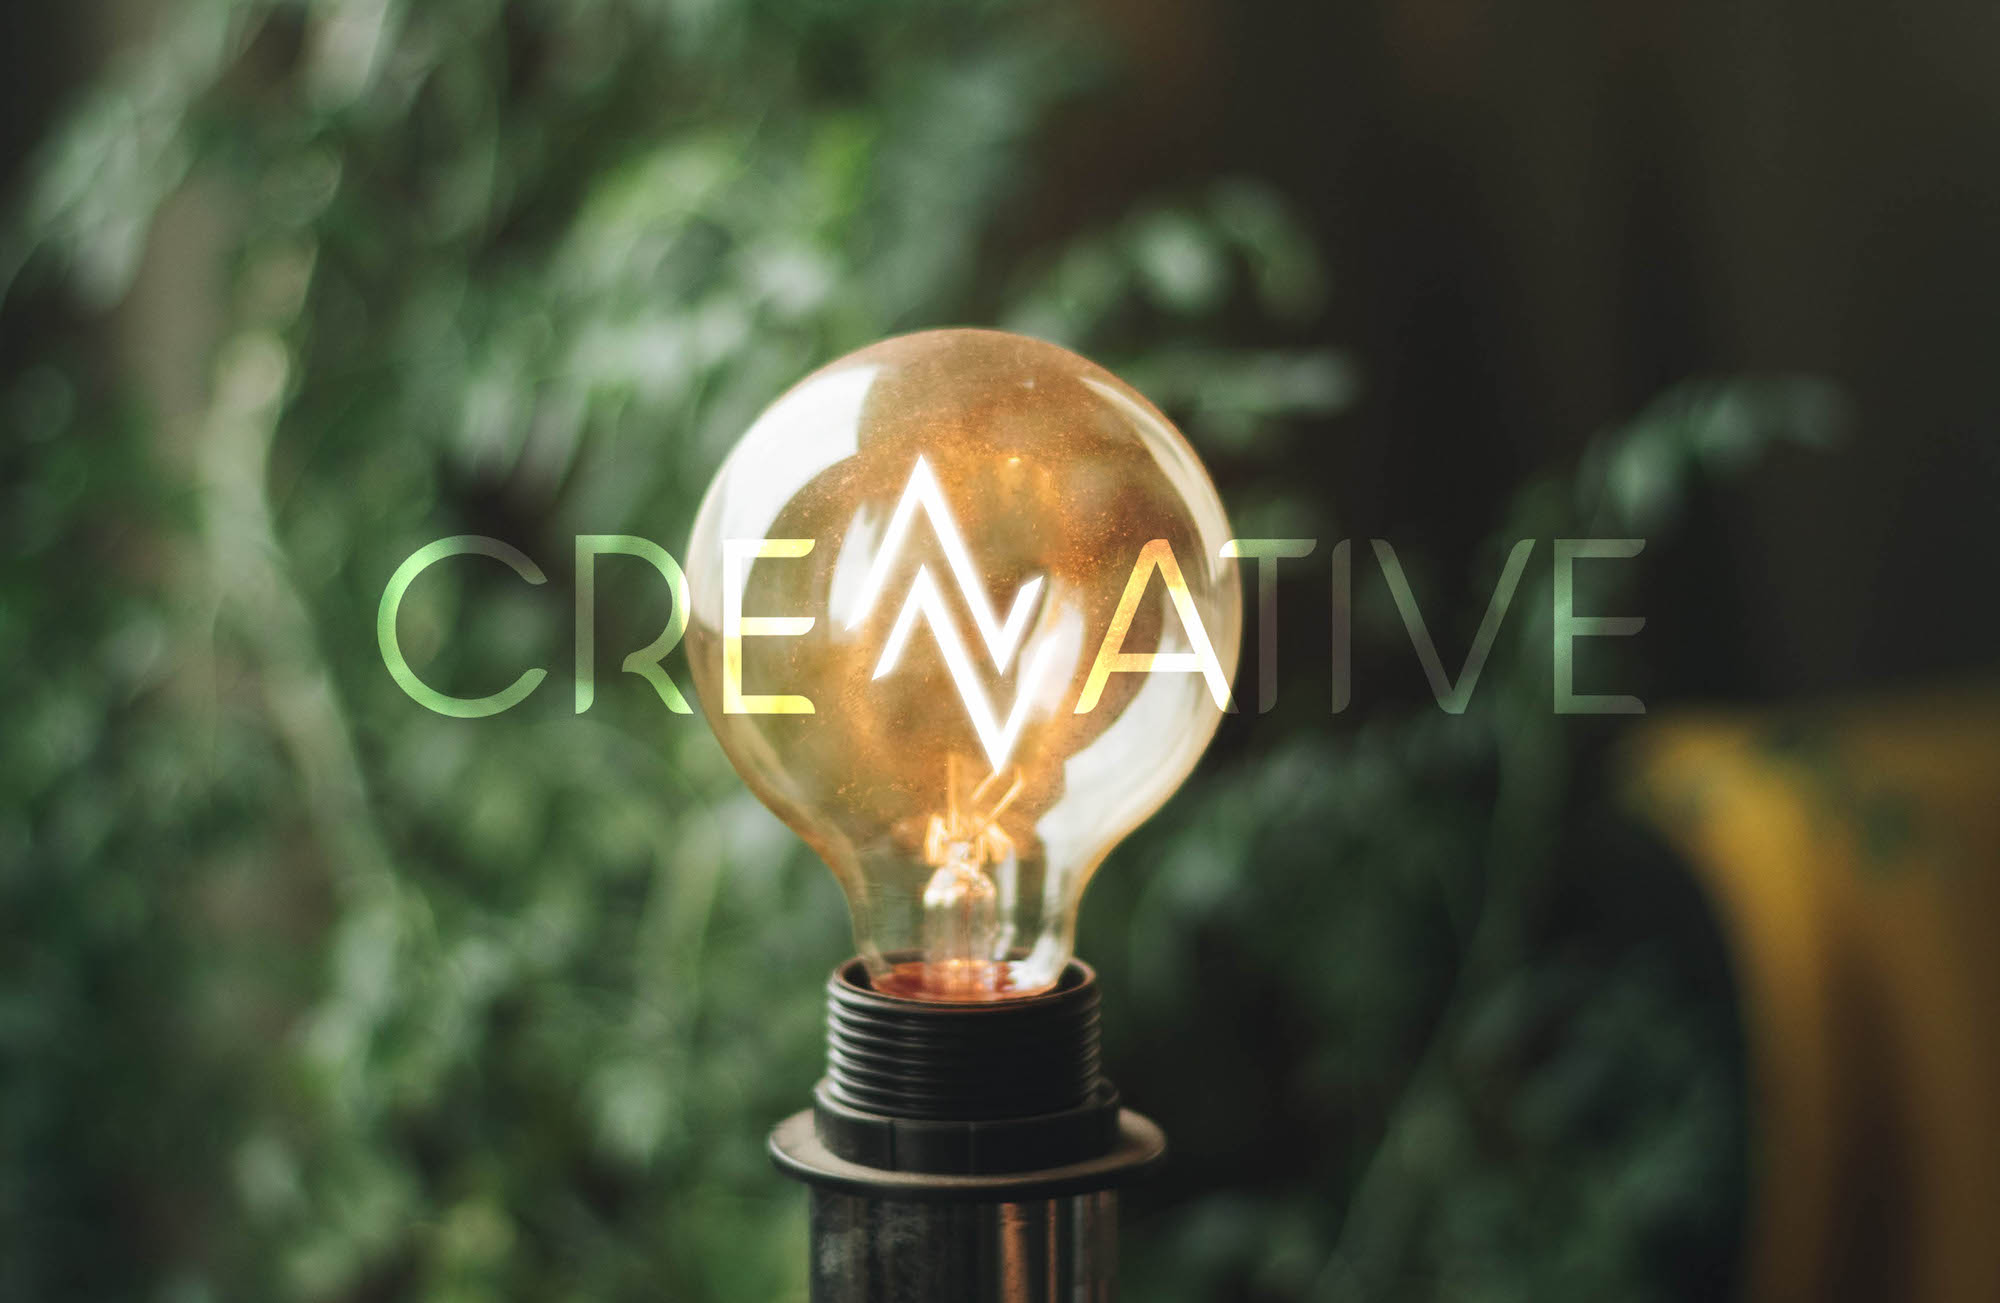 About Crenative - We are unlike other digital agency.We are highly experienced digital nomads and marketing experts whom eat, play and dream about technology.Learn More